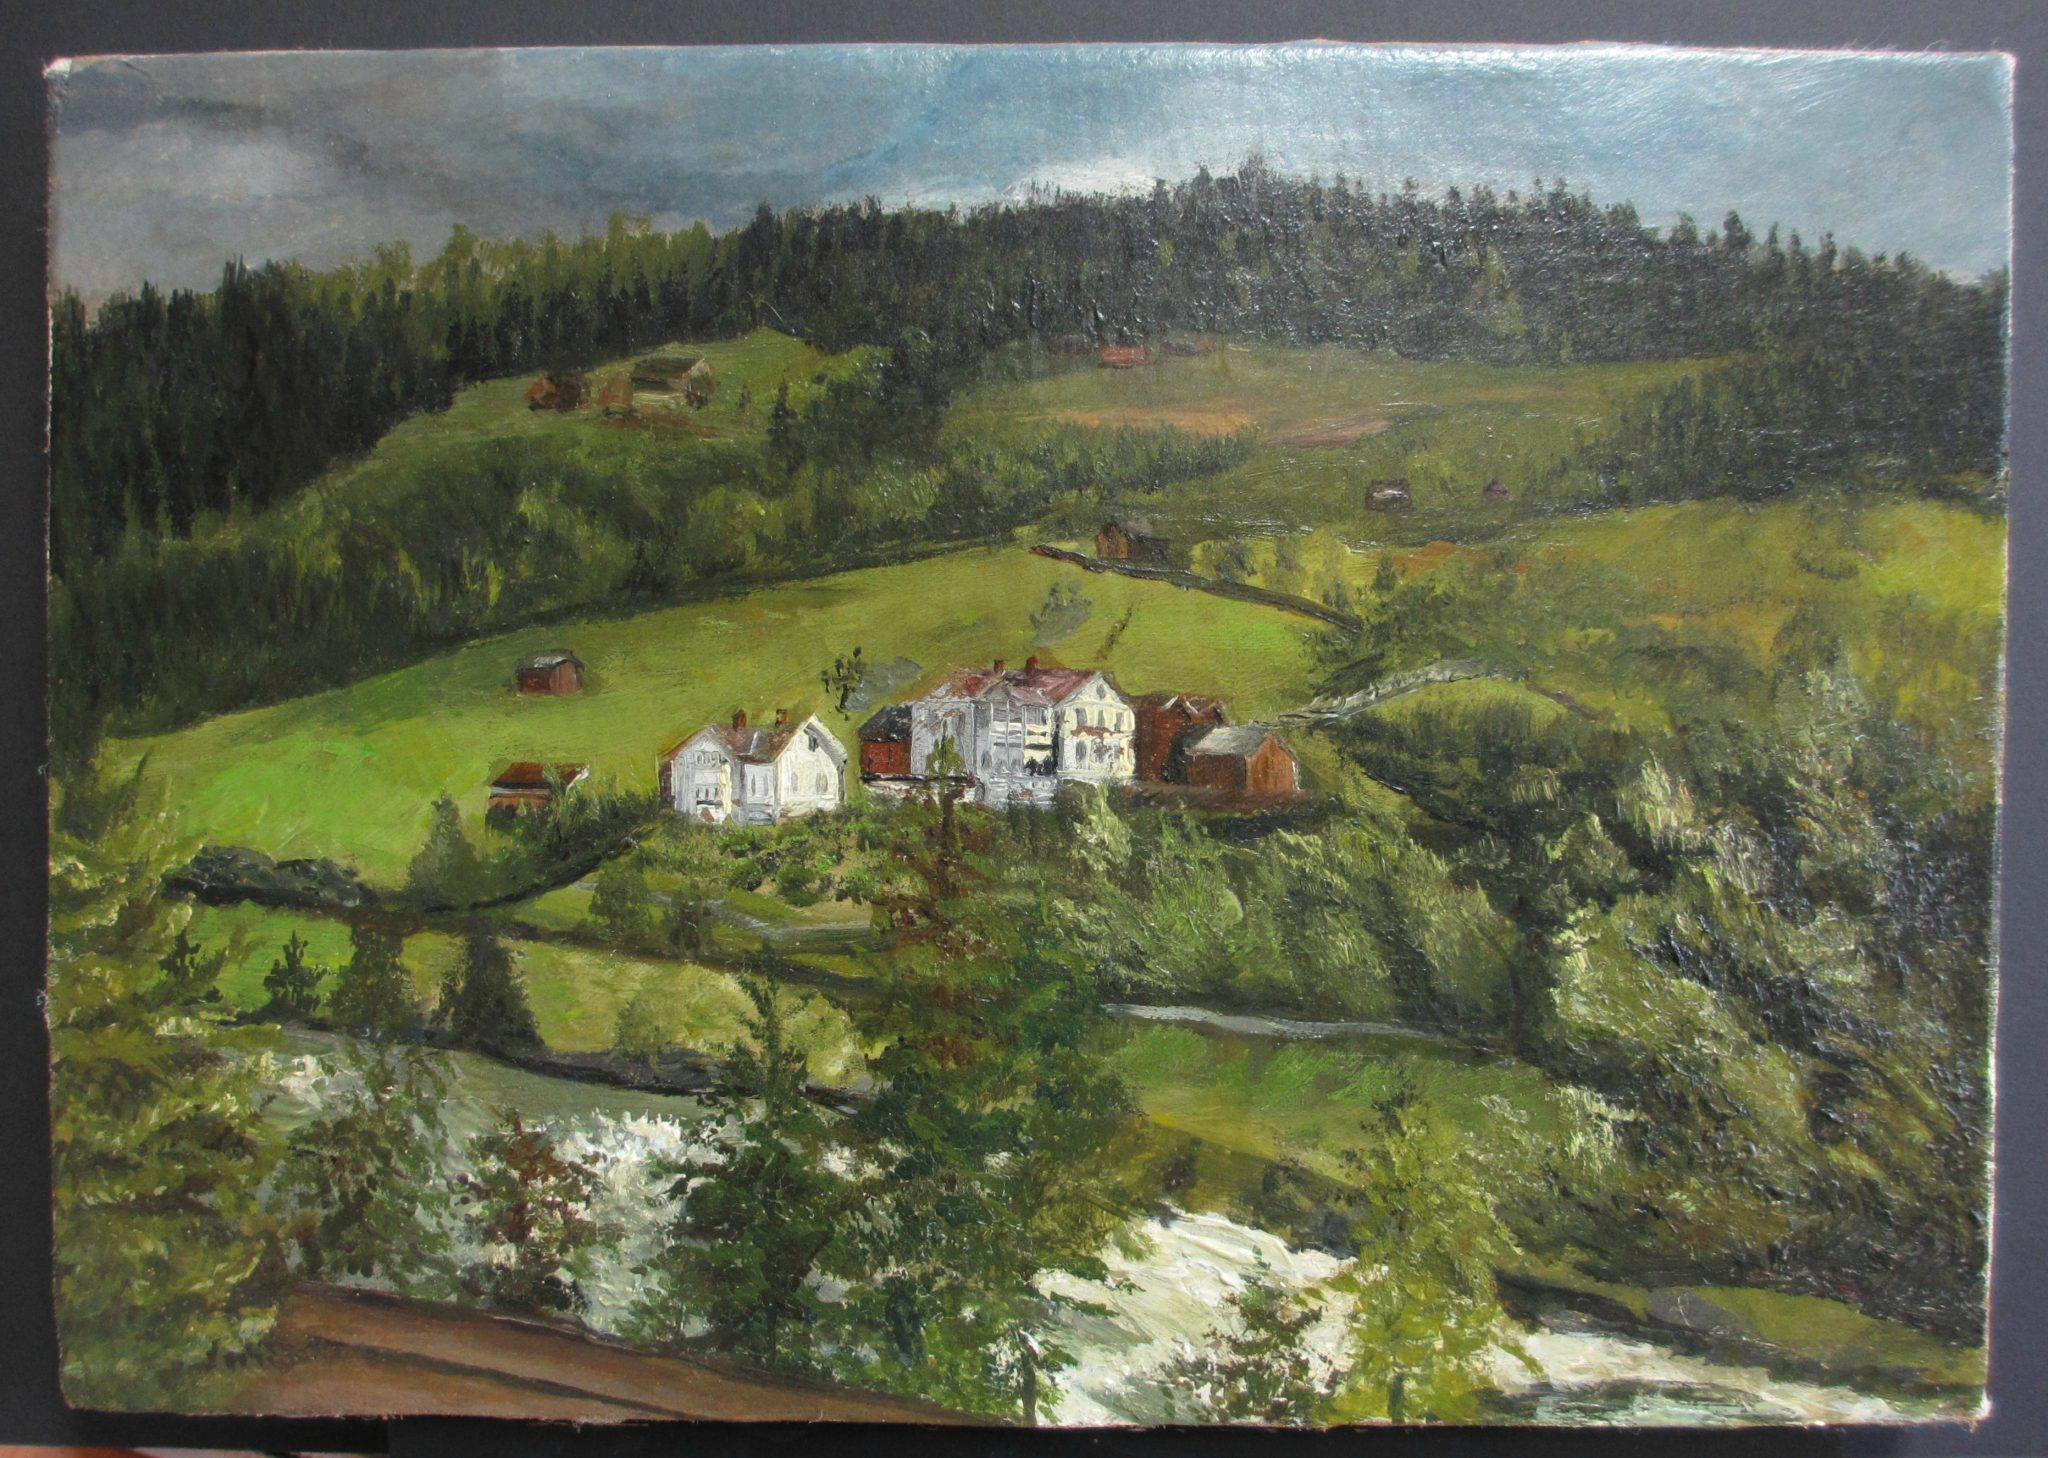 Village Scene - After Art Restoration Services